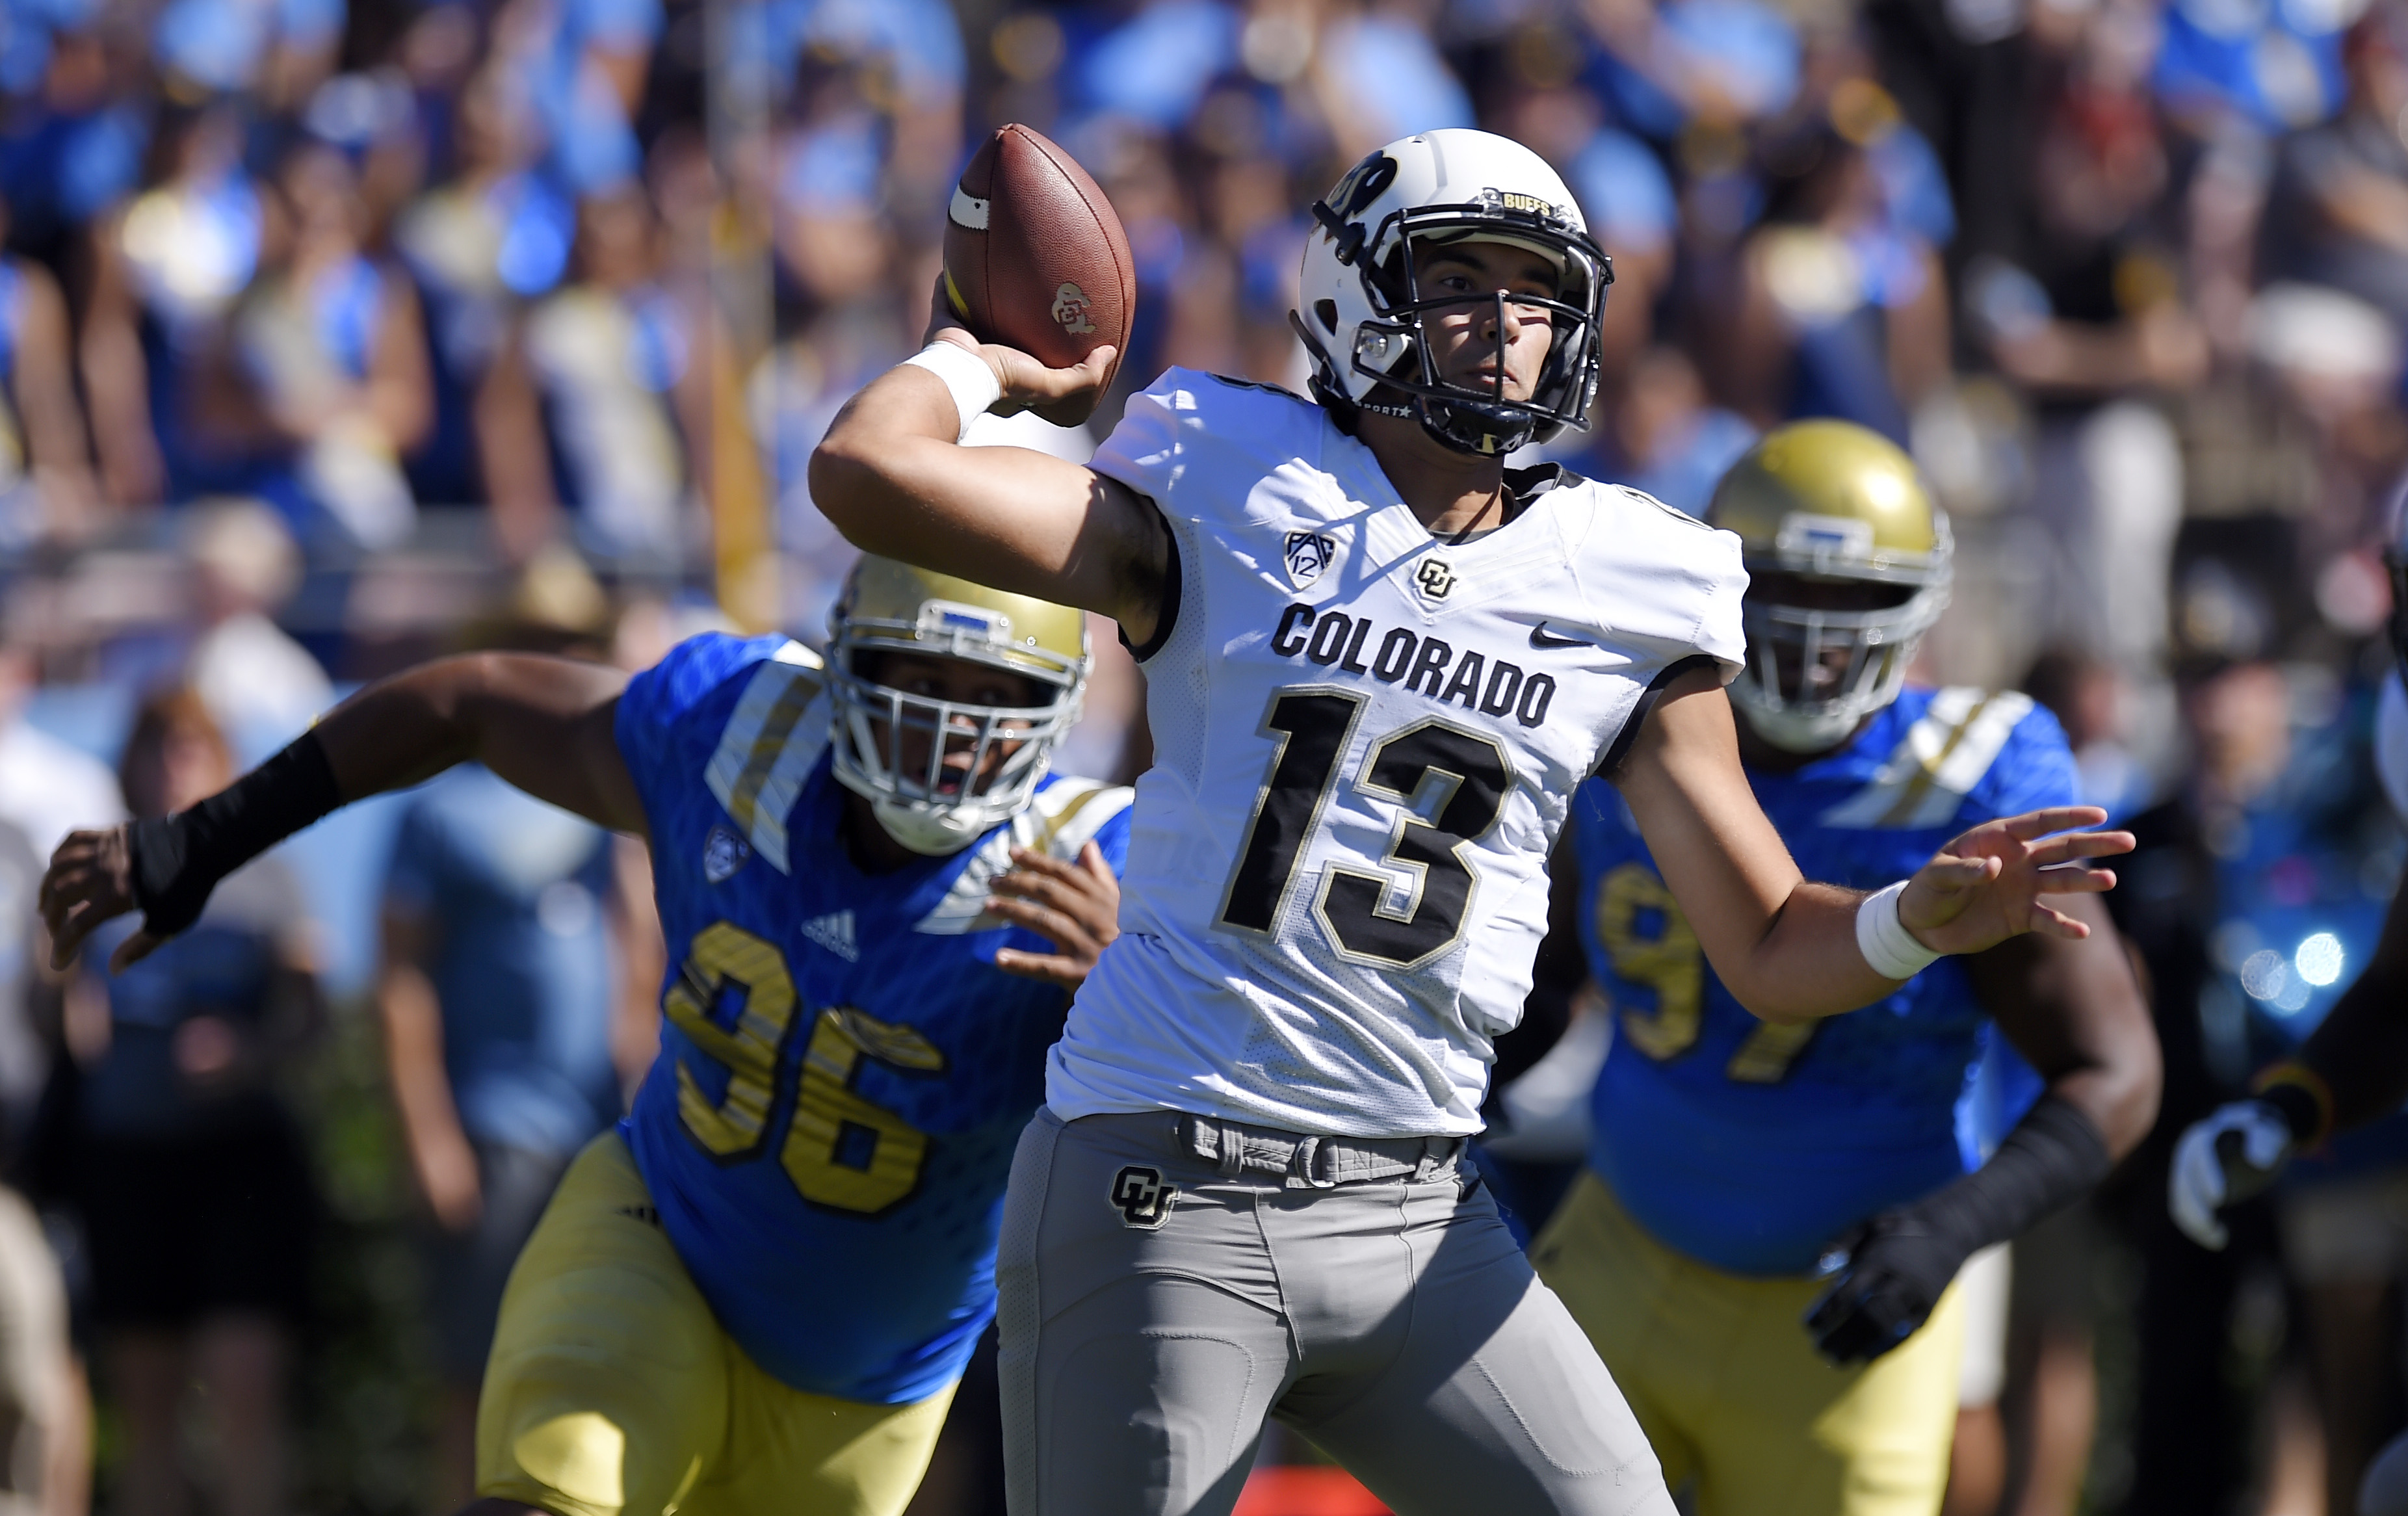 Colorado quarterback Sefo Liufau, center, passes under pressure from UCLA defensive lineman Eli Ankou, left, during the first half of an NCAA college football game, Saturday, Oct. 31, 2015, in Pasadena, Calif. (AP Photo/Mark J. Terrill)